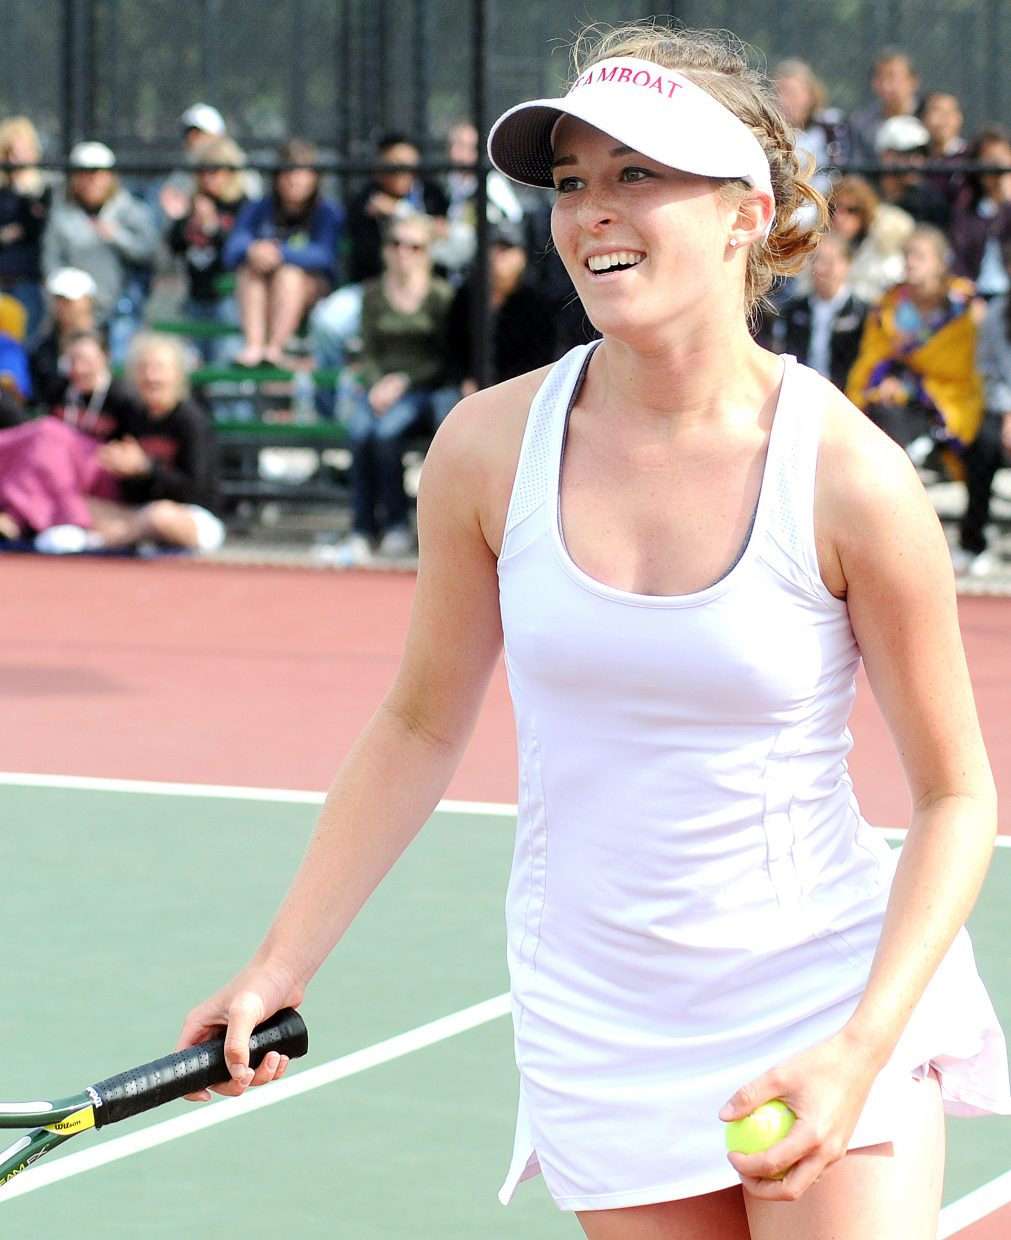 Kylee Swiggart smiles wide after winning the final point of her quarterfinal match at the state tennis tournament in Pueblo. Swiggart is the only Sailor who advanced to today's state semifinals.